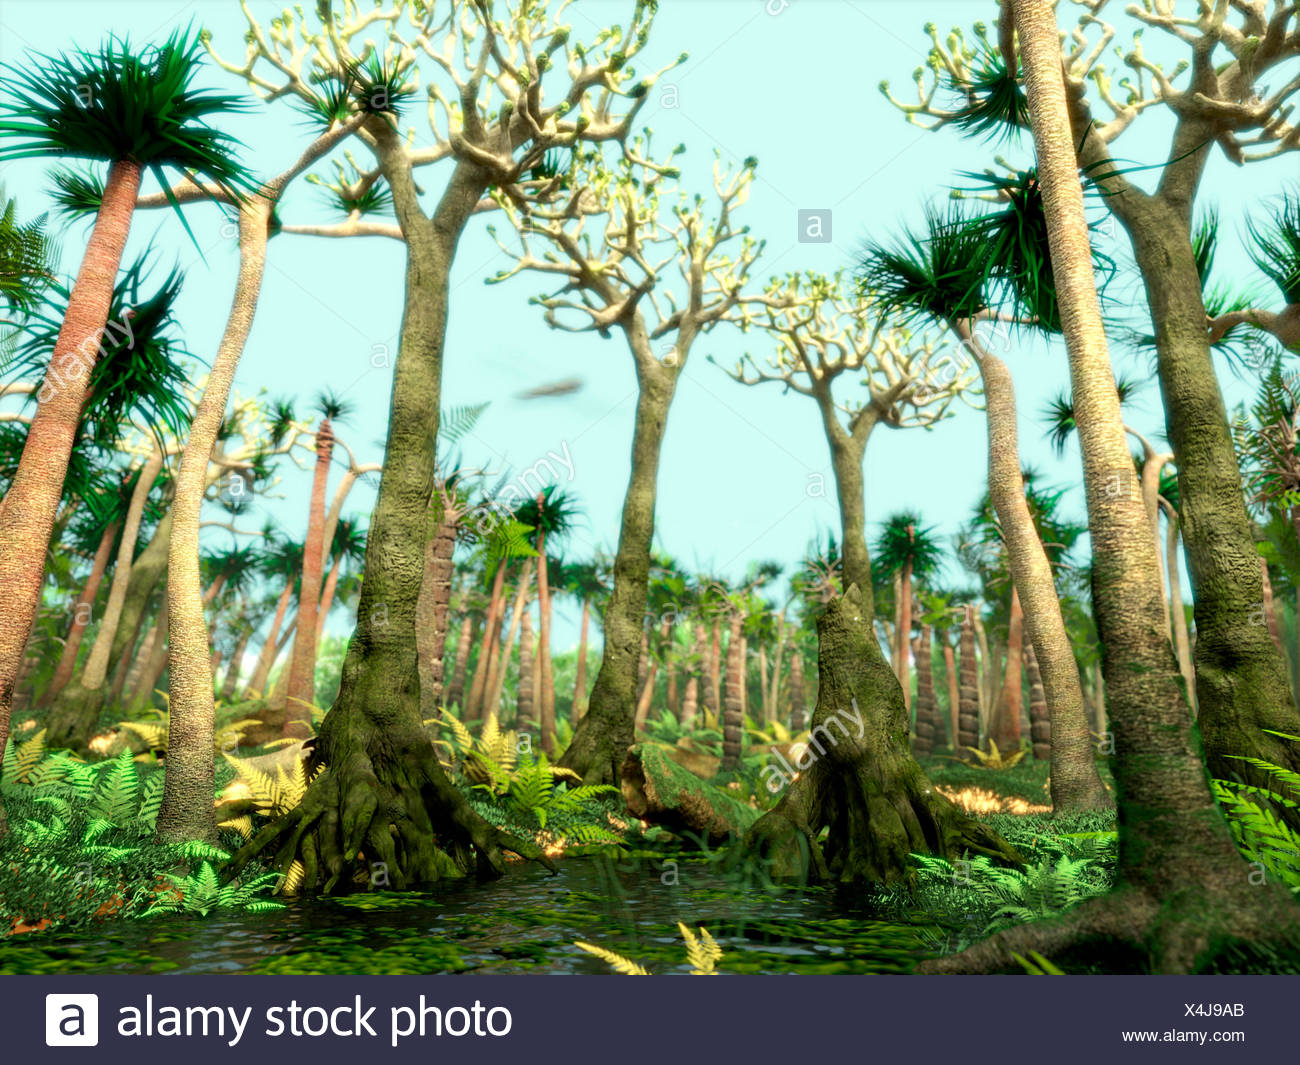 Carboniferous Geology Geologic Period Coal Bed Swamp Forest